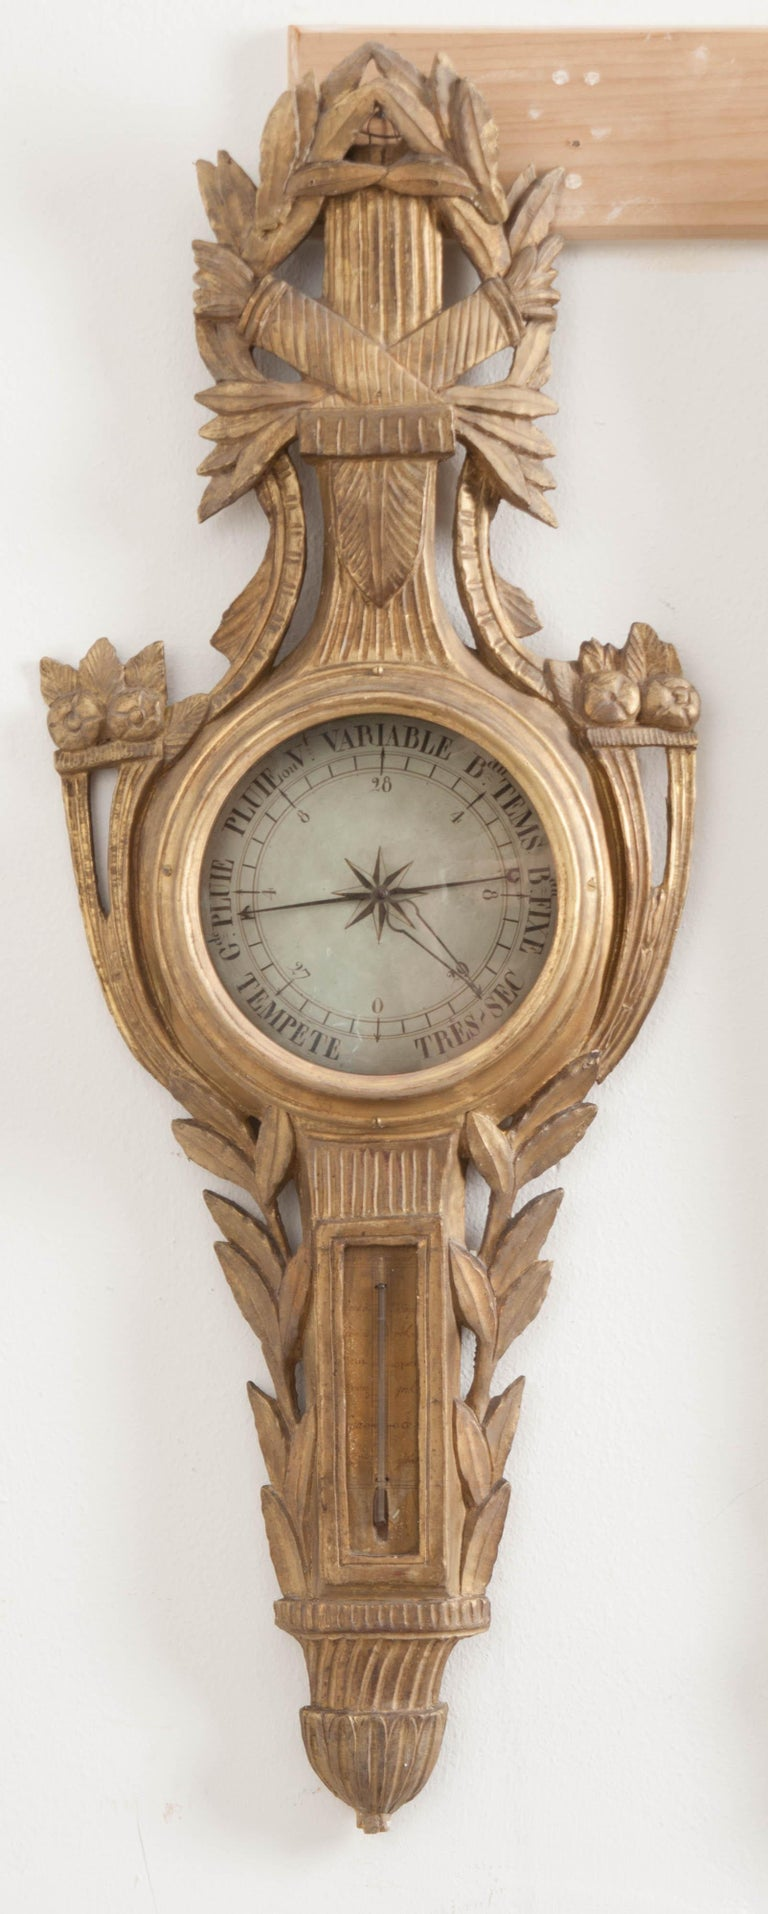 A gorgeous gold gilt barometer from the early part of the 19th century, France. This early scientific instrument was used to measure atmospheric pressure in order to better predict the weather. This antique piece has both a barometer as well as a